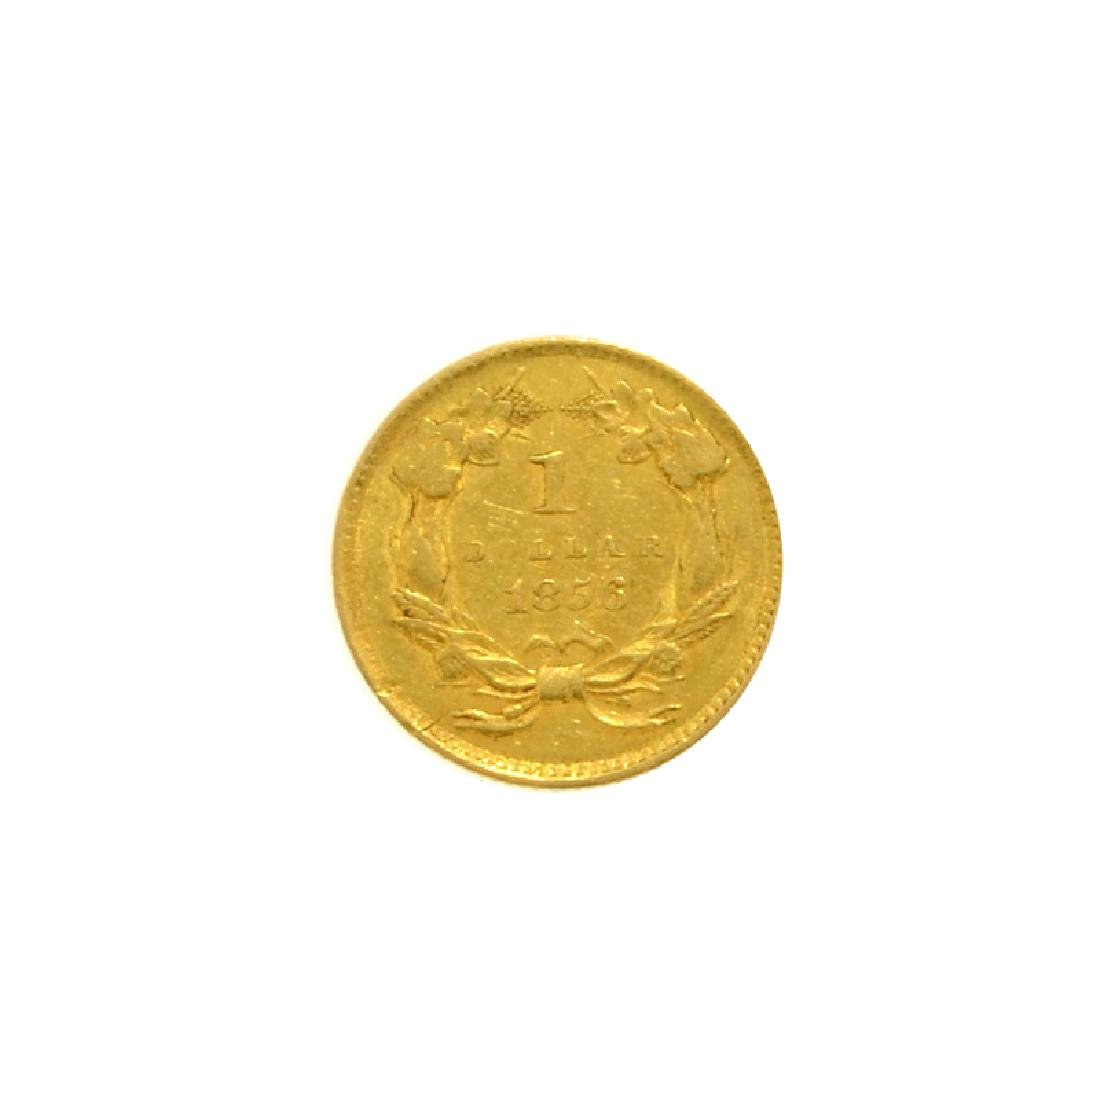 1856 $1 U.S. Indian Head Gold Coin - 2